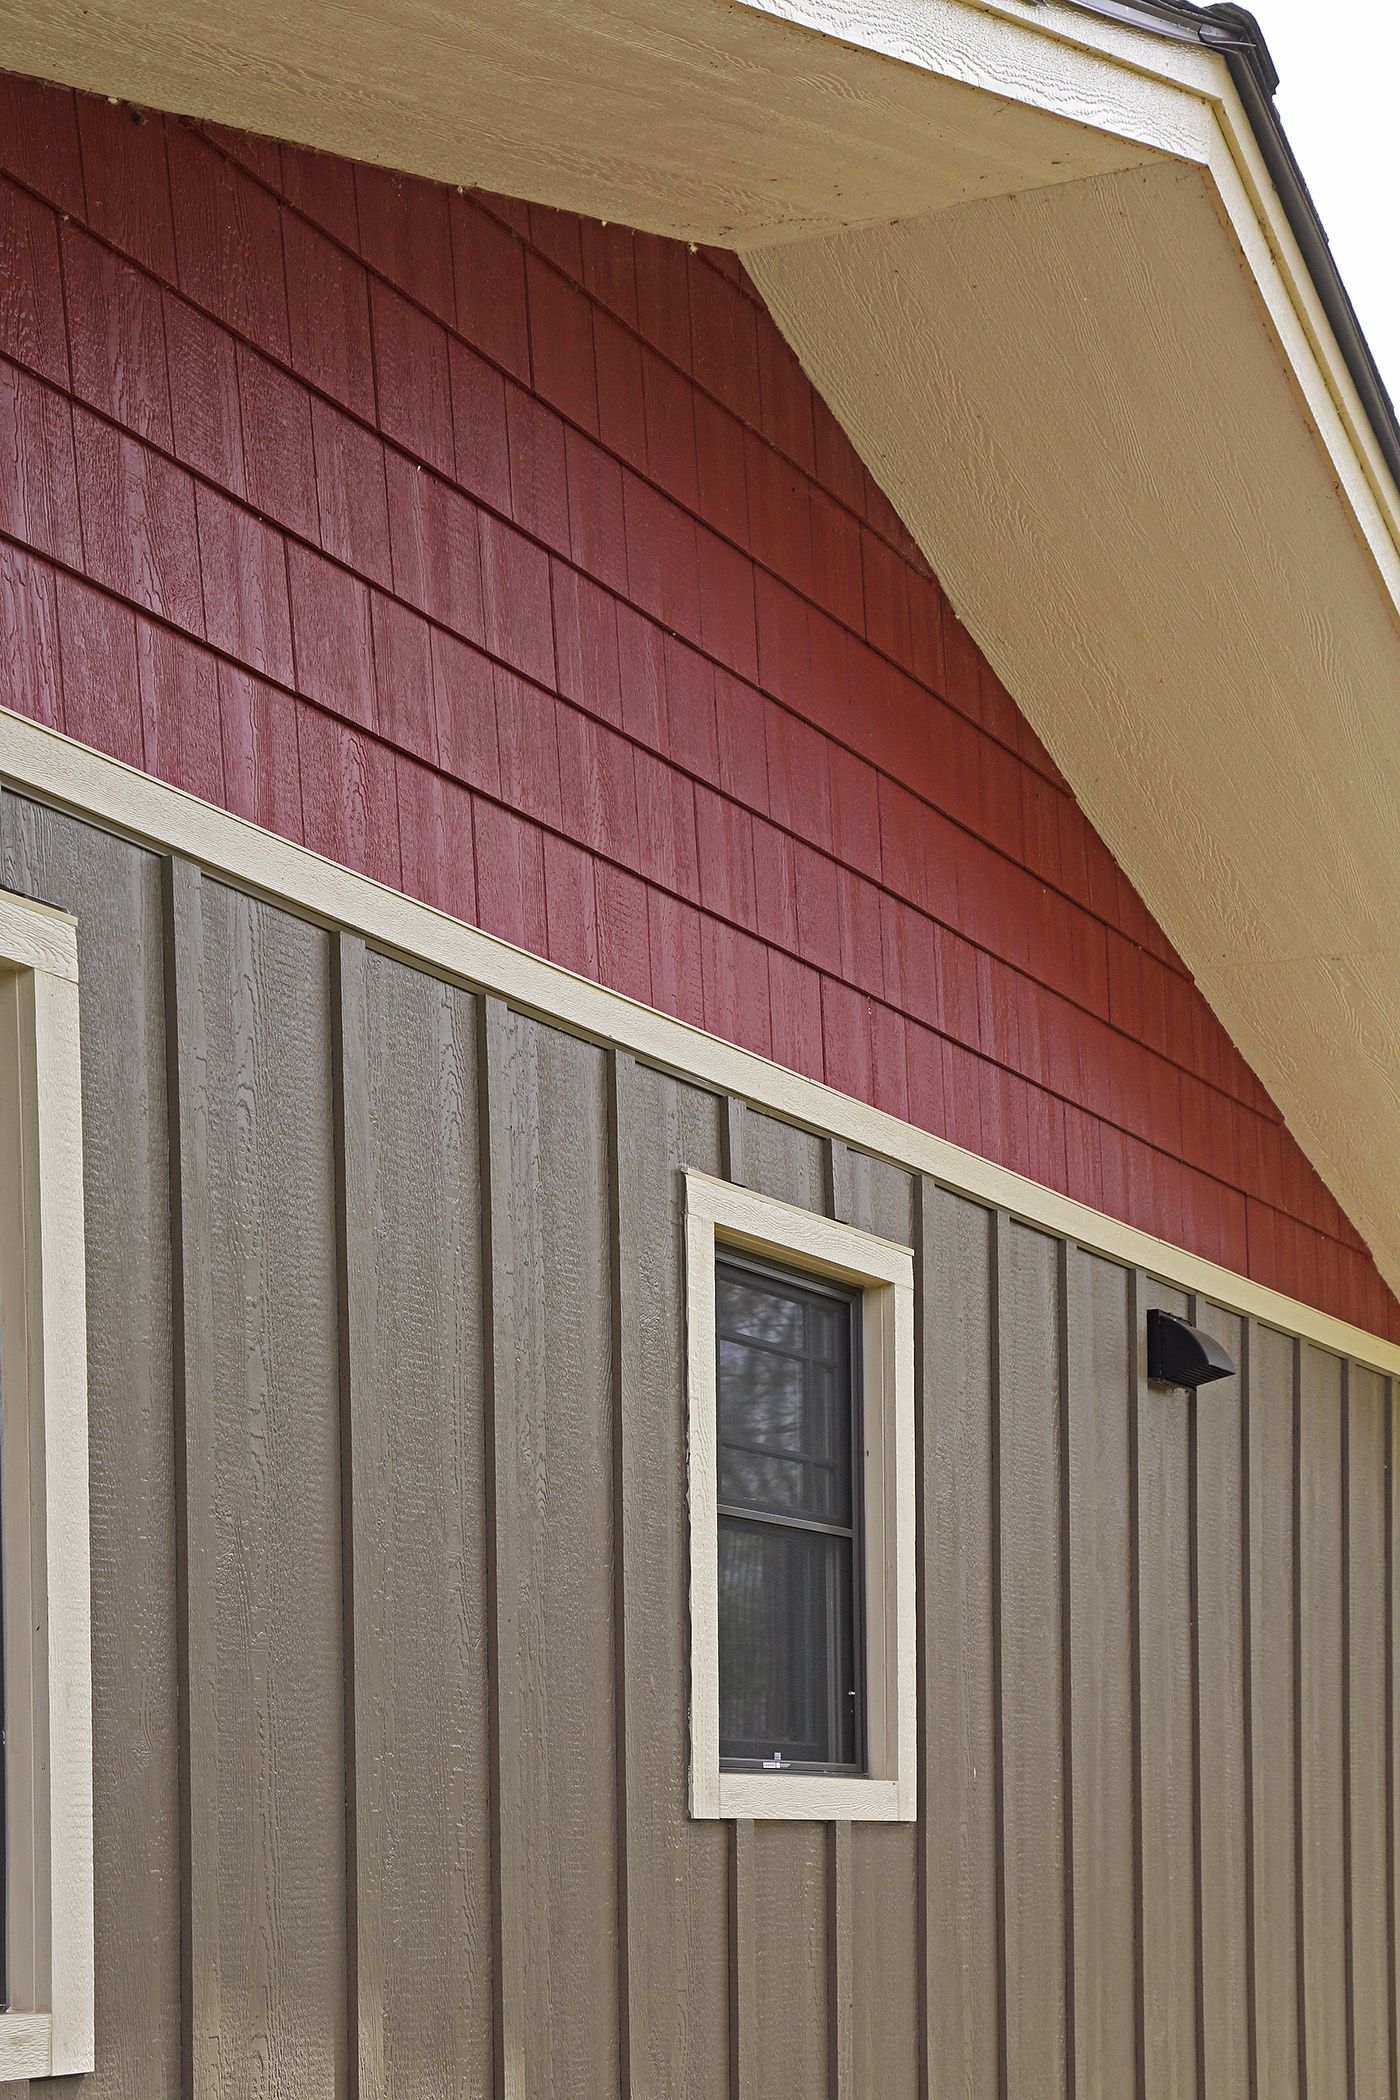 Lp Smartside Seal Diamond Kote Board And Batten Siding With Lp Smartside Cinnabar Diamond Kote Shake Siding Options Board And Batten Exterior Installing Siding